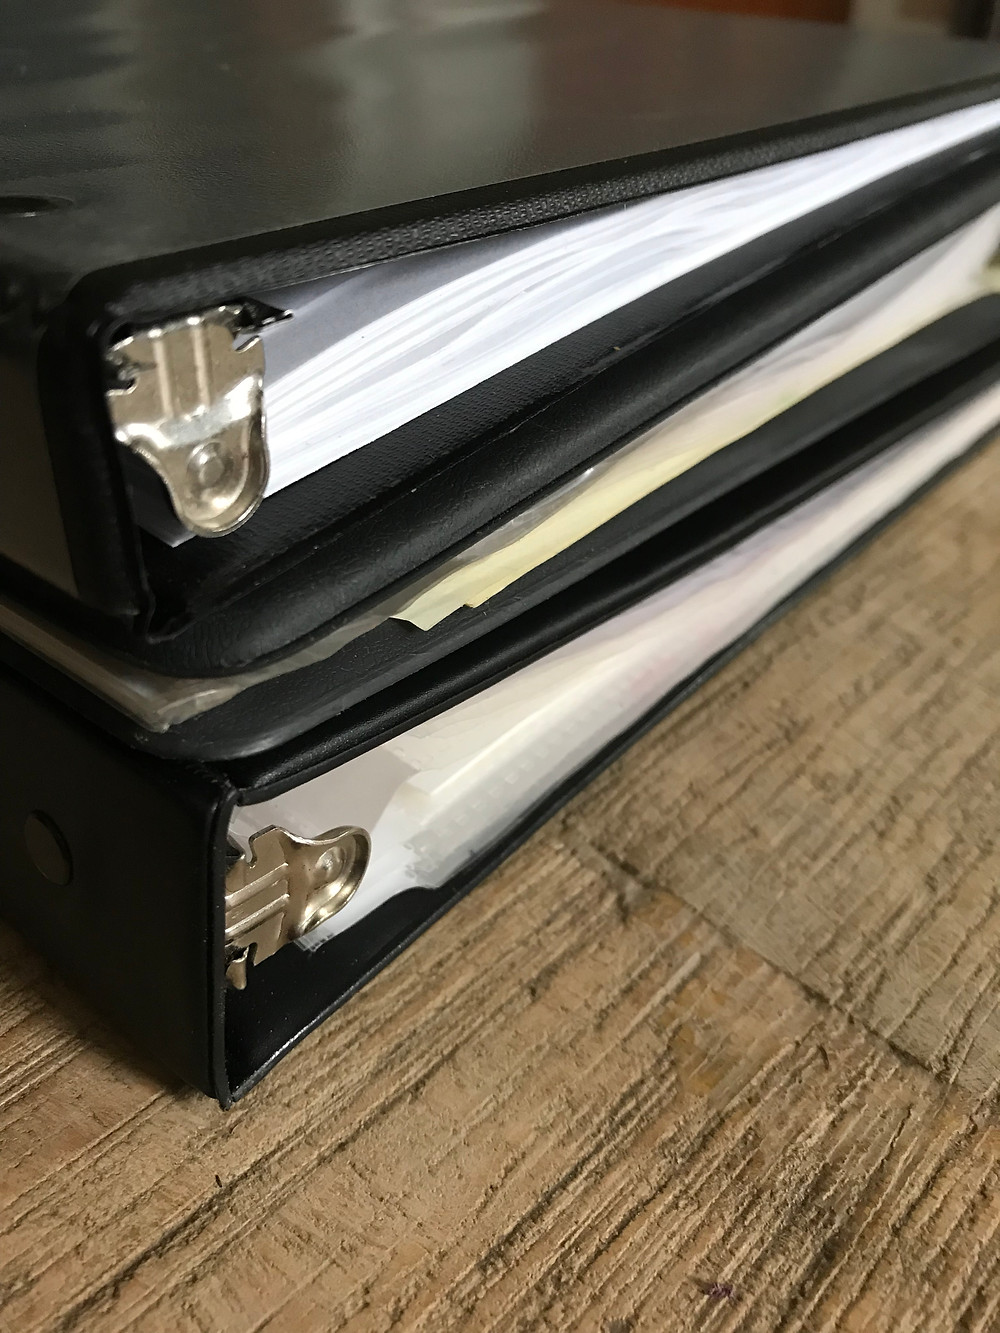 Binders full of policy and benefit information.